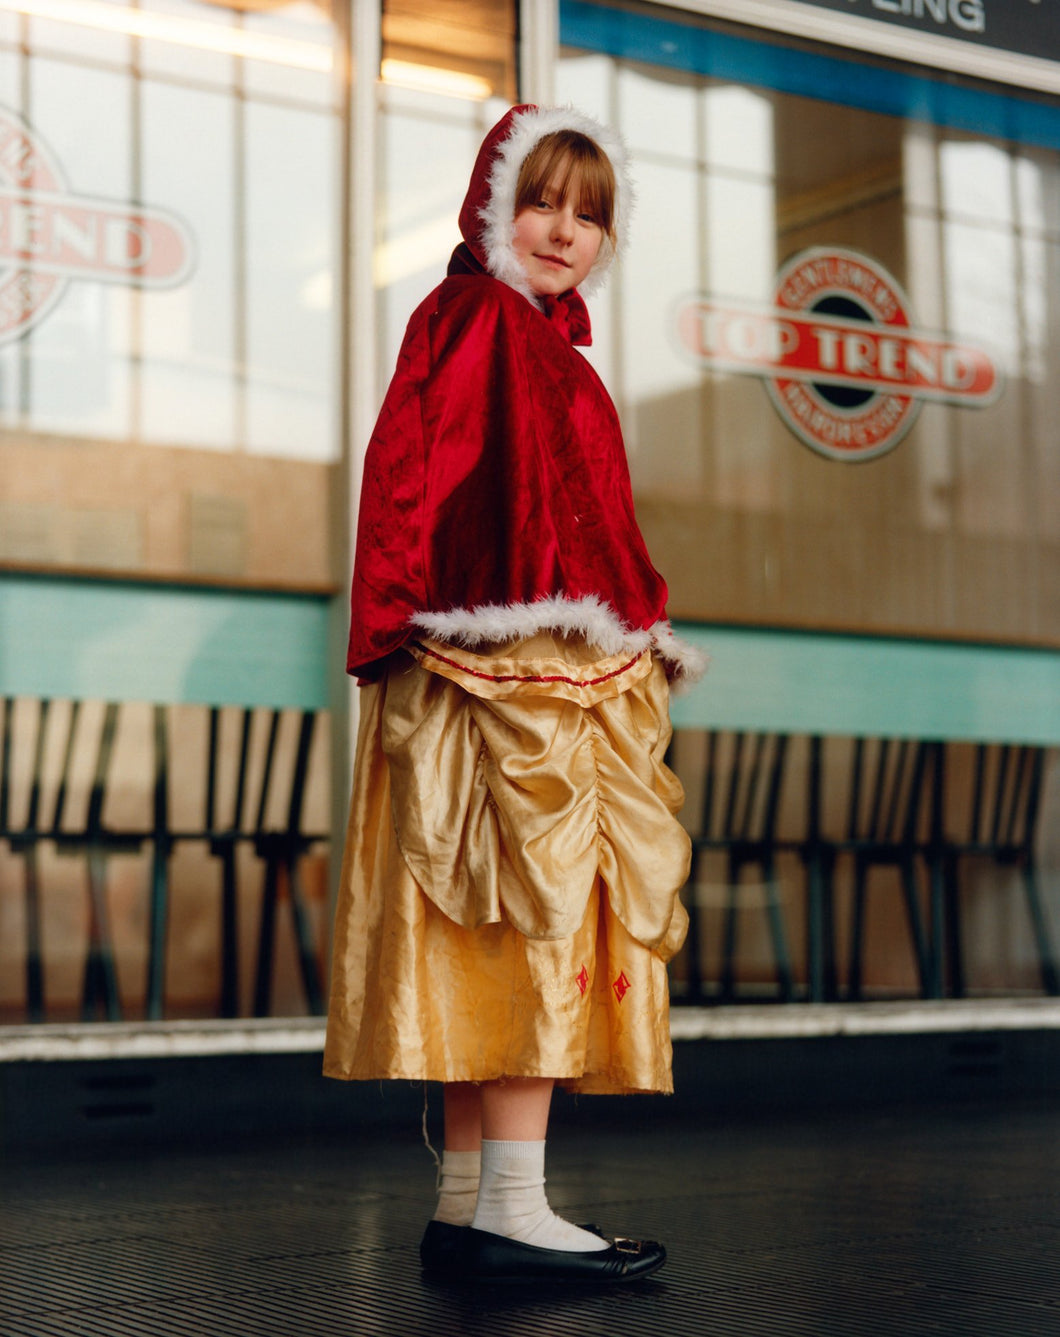 Jamie Hawkesworth - Preston Bus Station